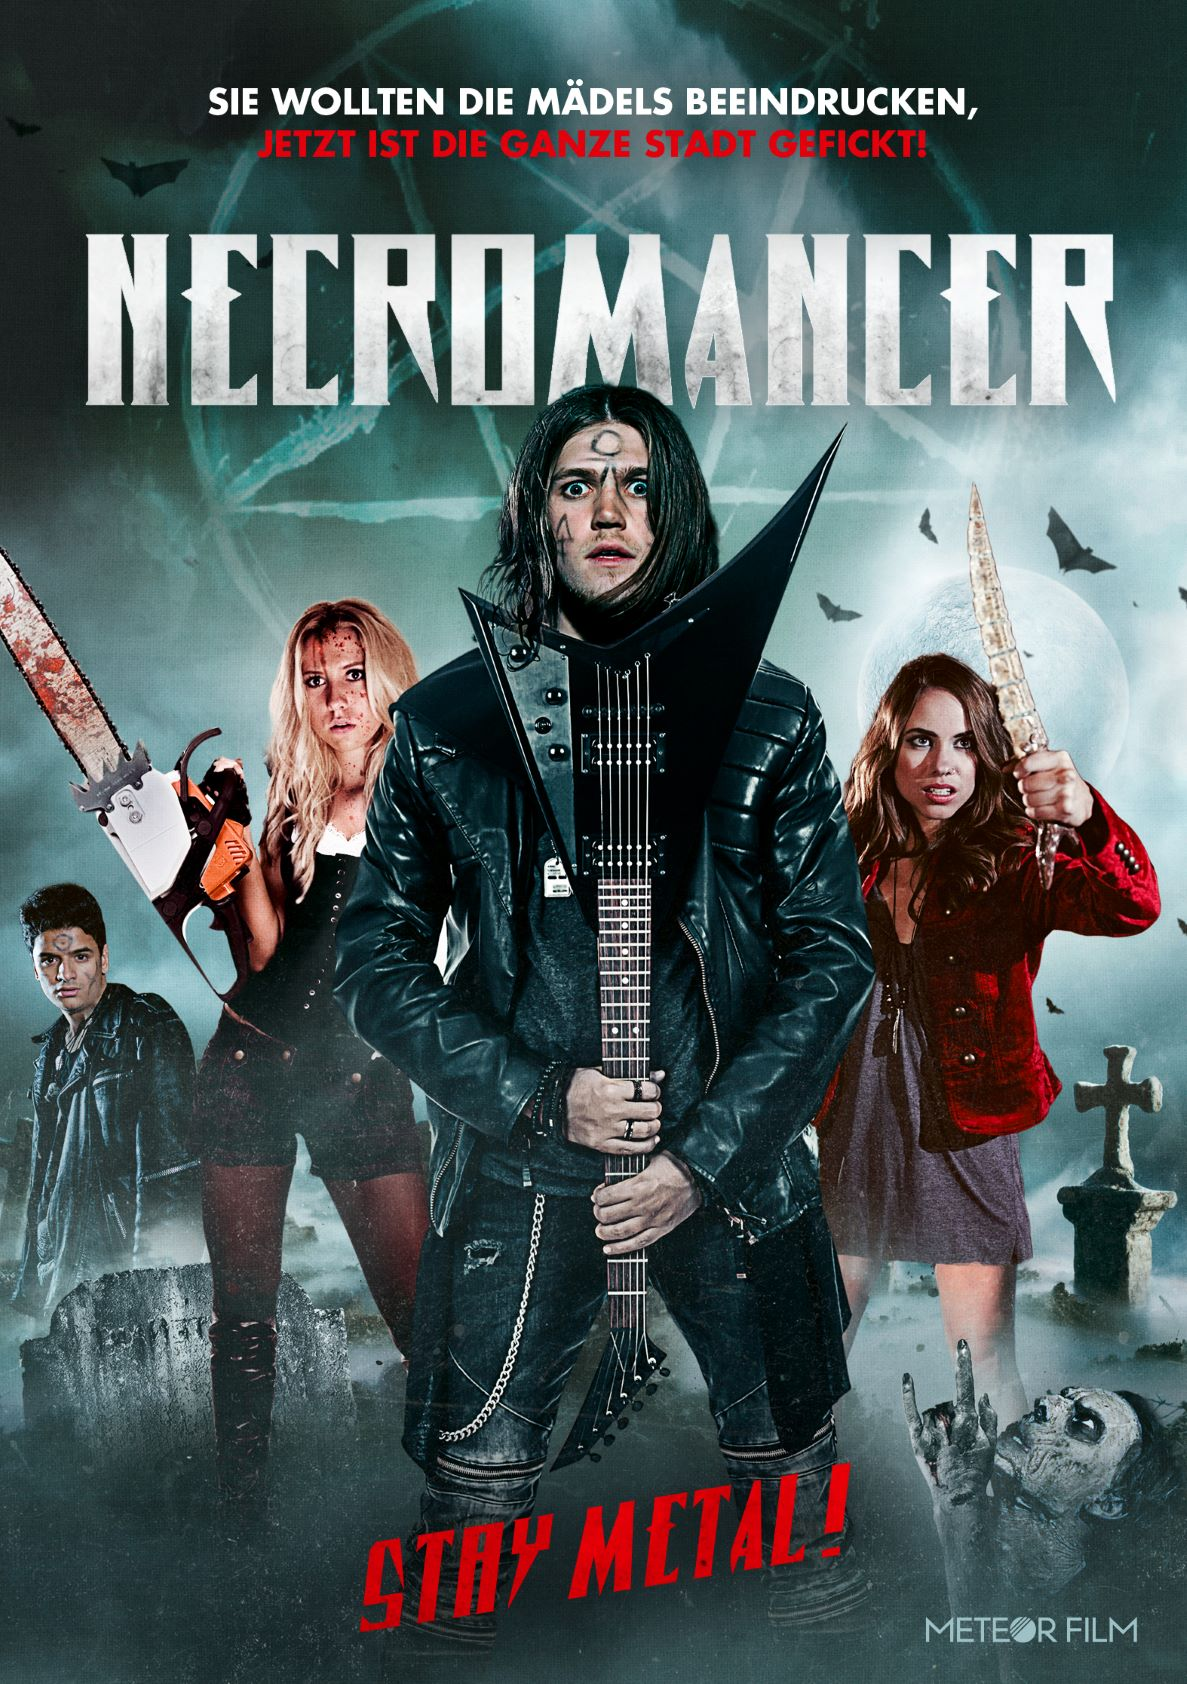 NECROMANCER - STAY METAL! - VÖ heute